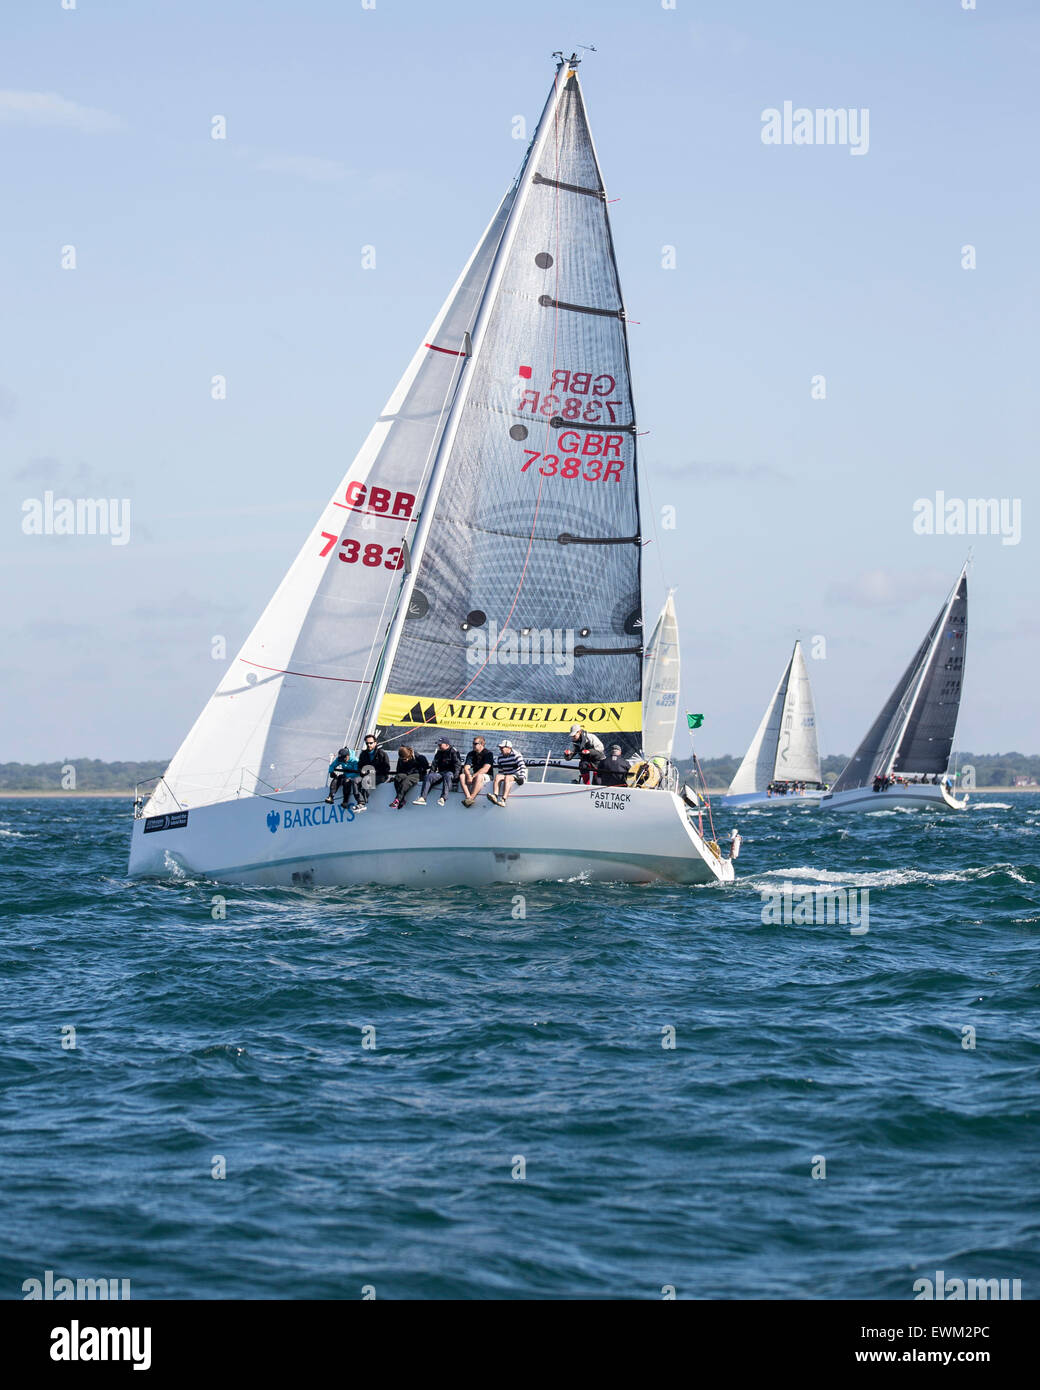 UK. 27th June, 2015. Clipper Reflex 38 GBR 7383R 'Fast Tack Sailing' taking part in the 2015 Round the Island - Stock Image